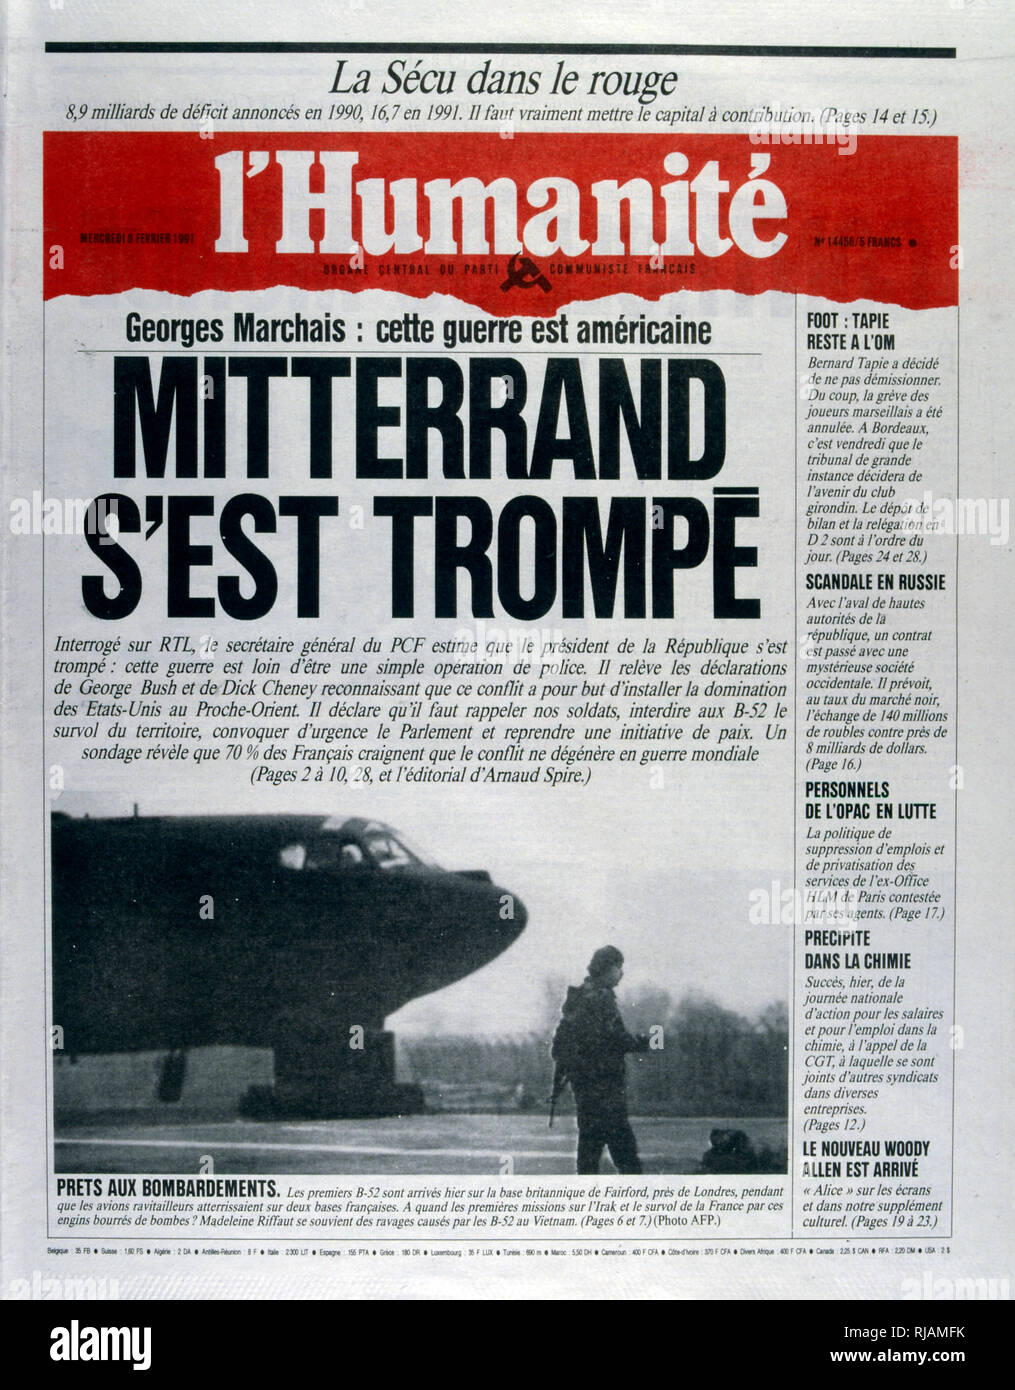 Front Page of the French Communist publication 'L'Humanite' reporting that President Mitterrand is wrong to involve France in the Gulf War, 8th February 1991.  The Gulf War (2 August 1990 - 28 February 1991), codenamed Operation Desert Shield and Operation Desert Storm, was a war waged by coalition forces from 35 nations led by the United States against Iraq in response to Iraq's invasion and annexation of Kuwait. - Stock Image